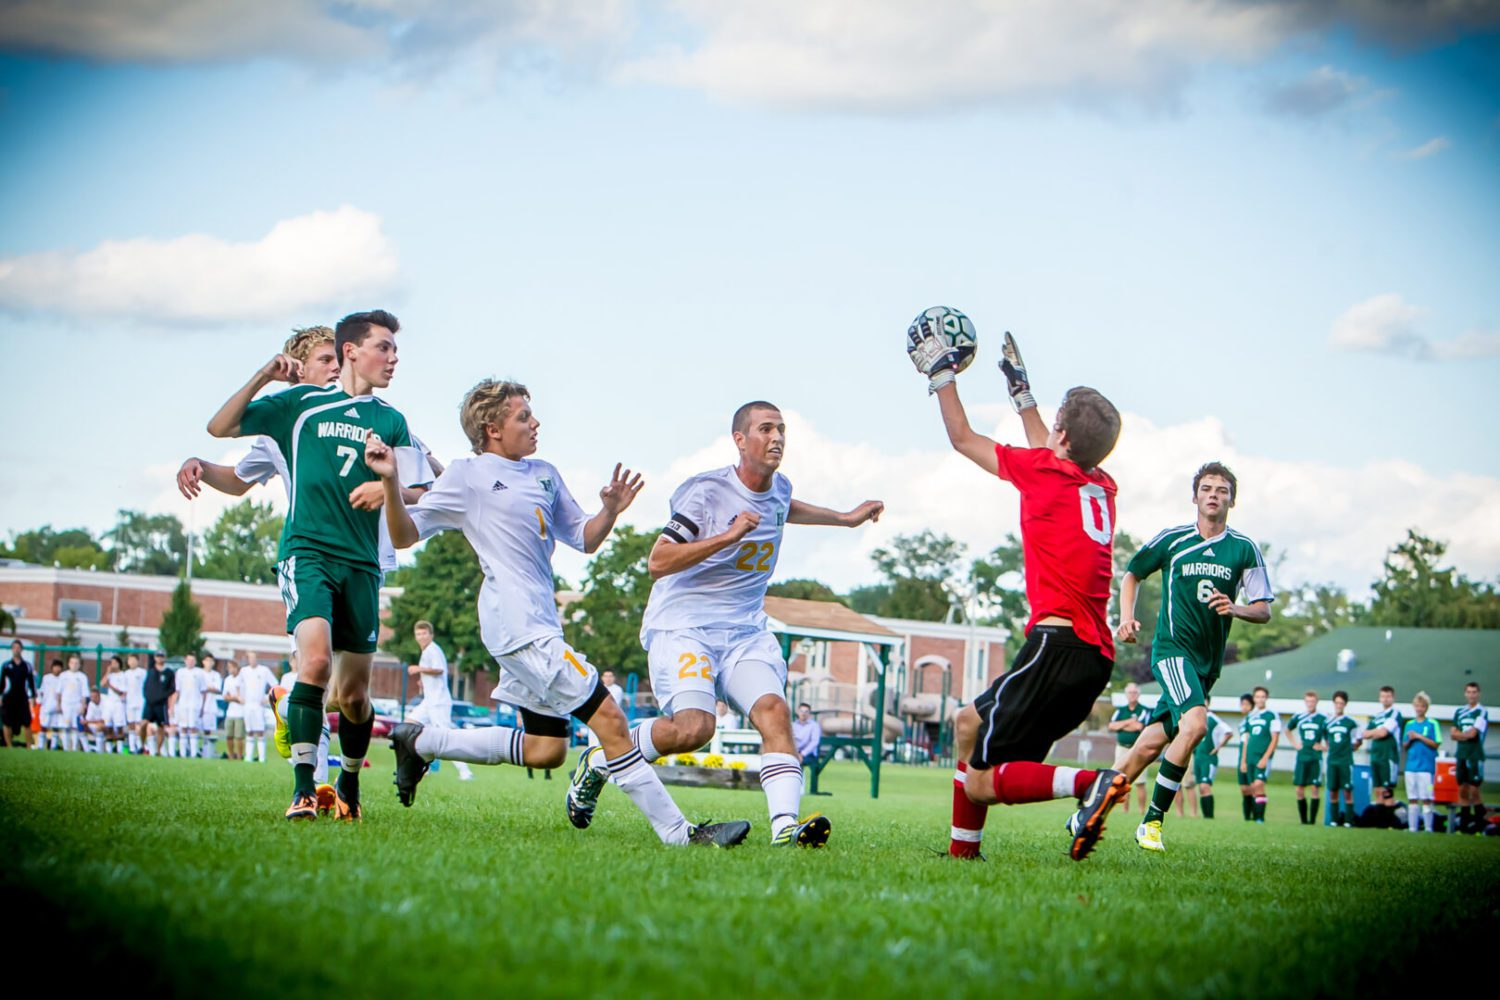 Western Michigan Christian nips Muskegon Catholic in River Valley Conference soccer shootout